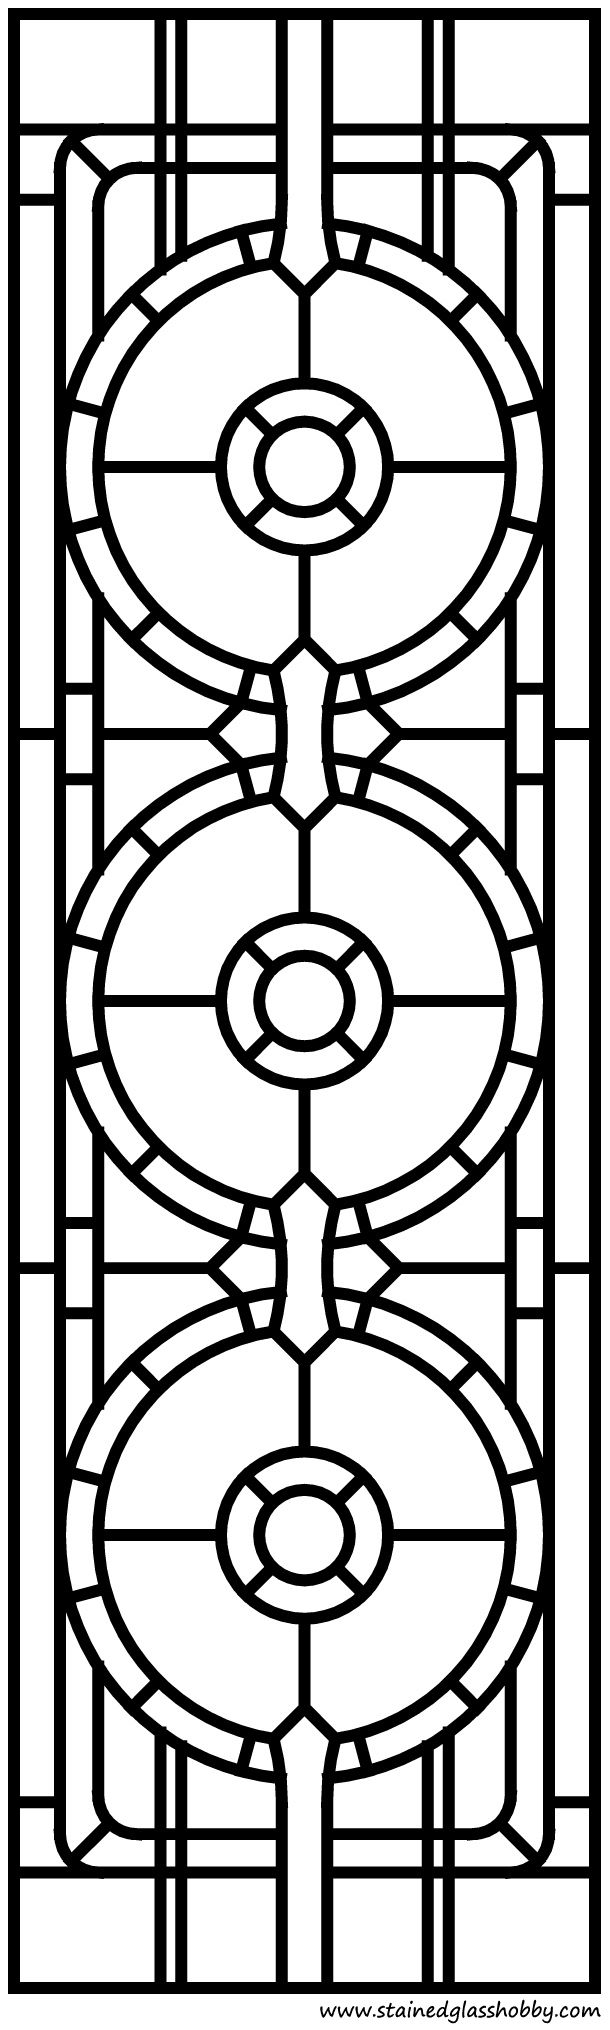 Celt free stained glass pattern   Art Lessons   Pinterest   Plantas ...